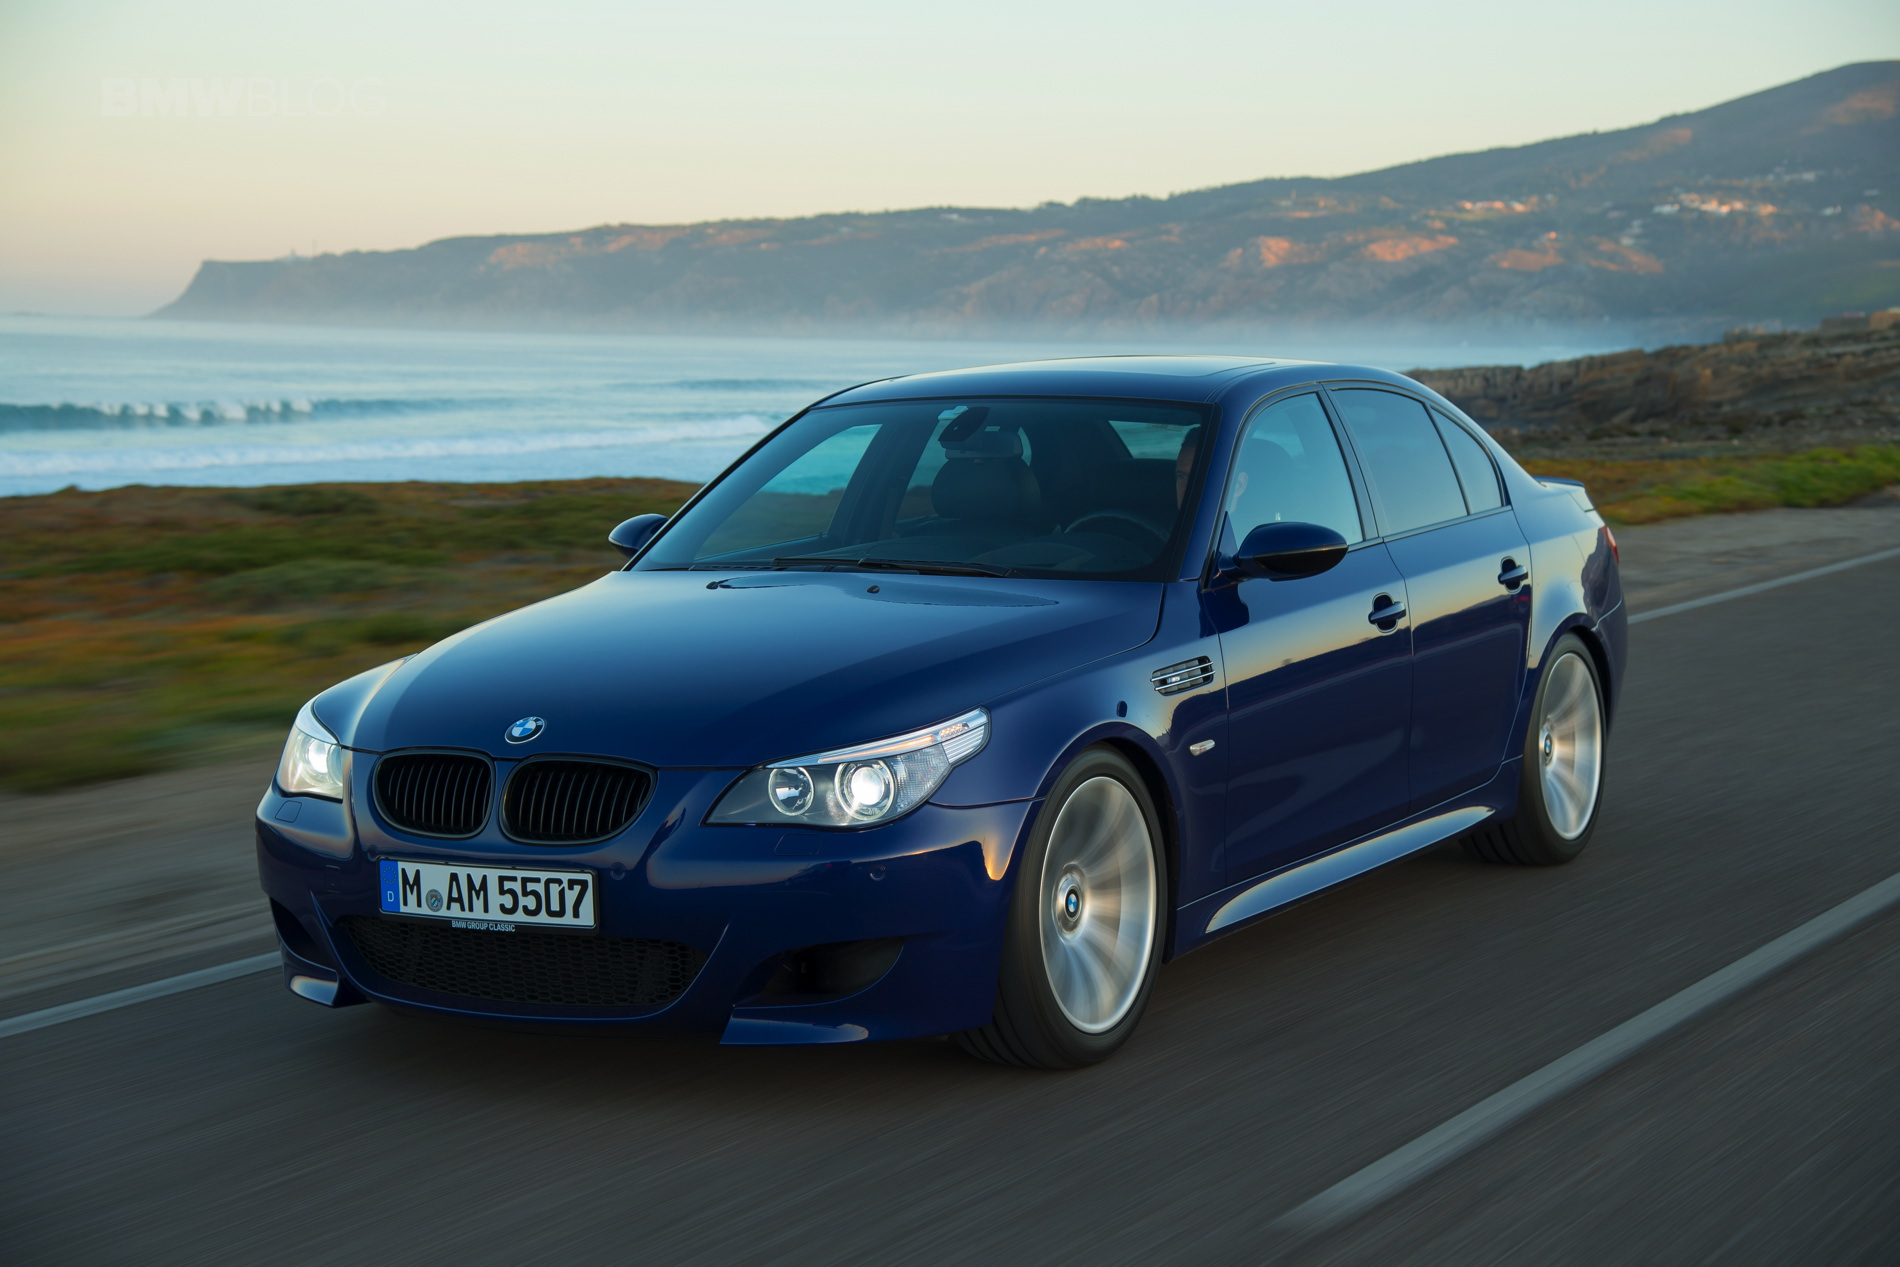 Video Carwow Shows Why The E60 Bmw M5 Has The Best M Engine